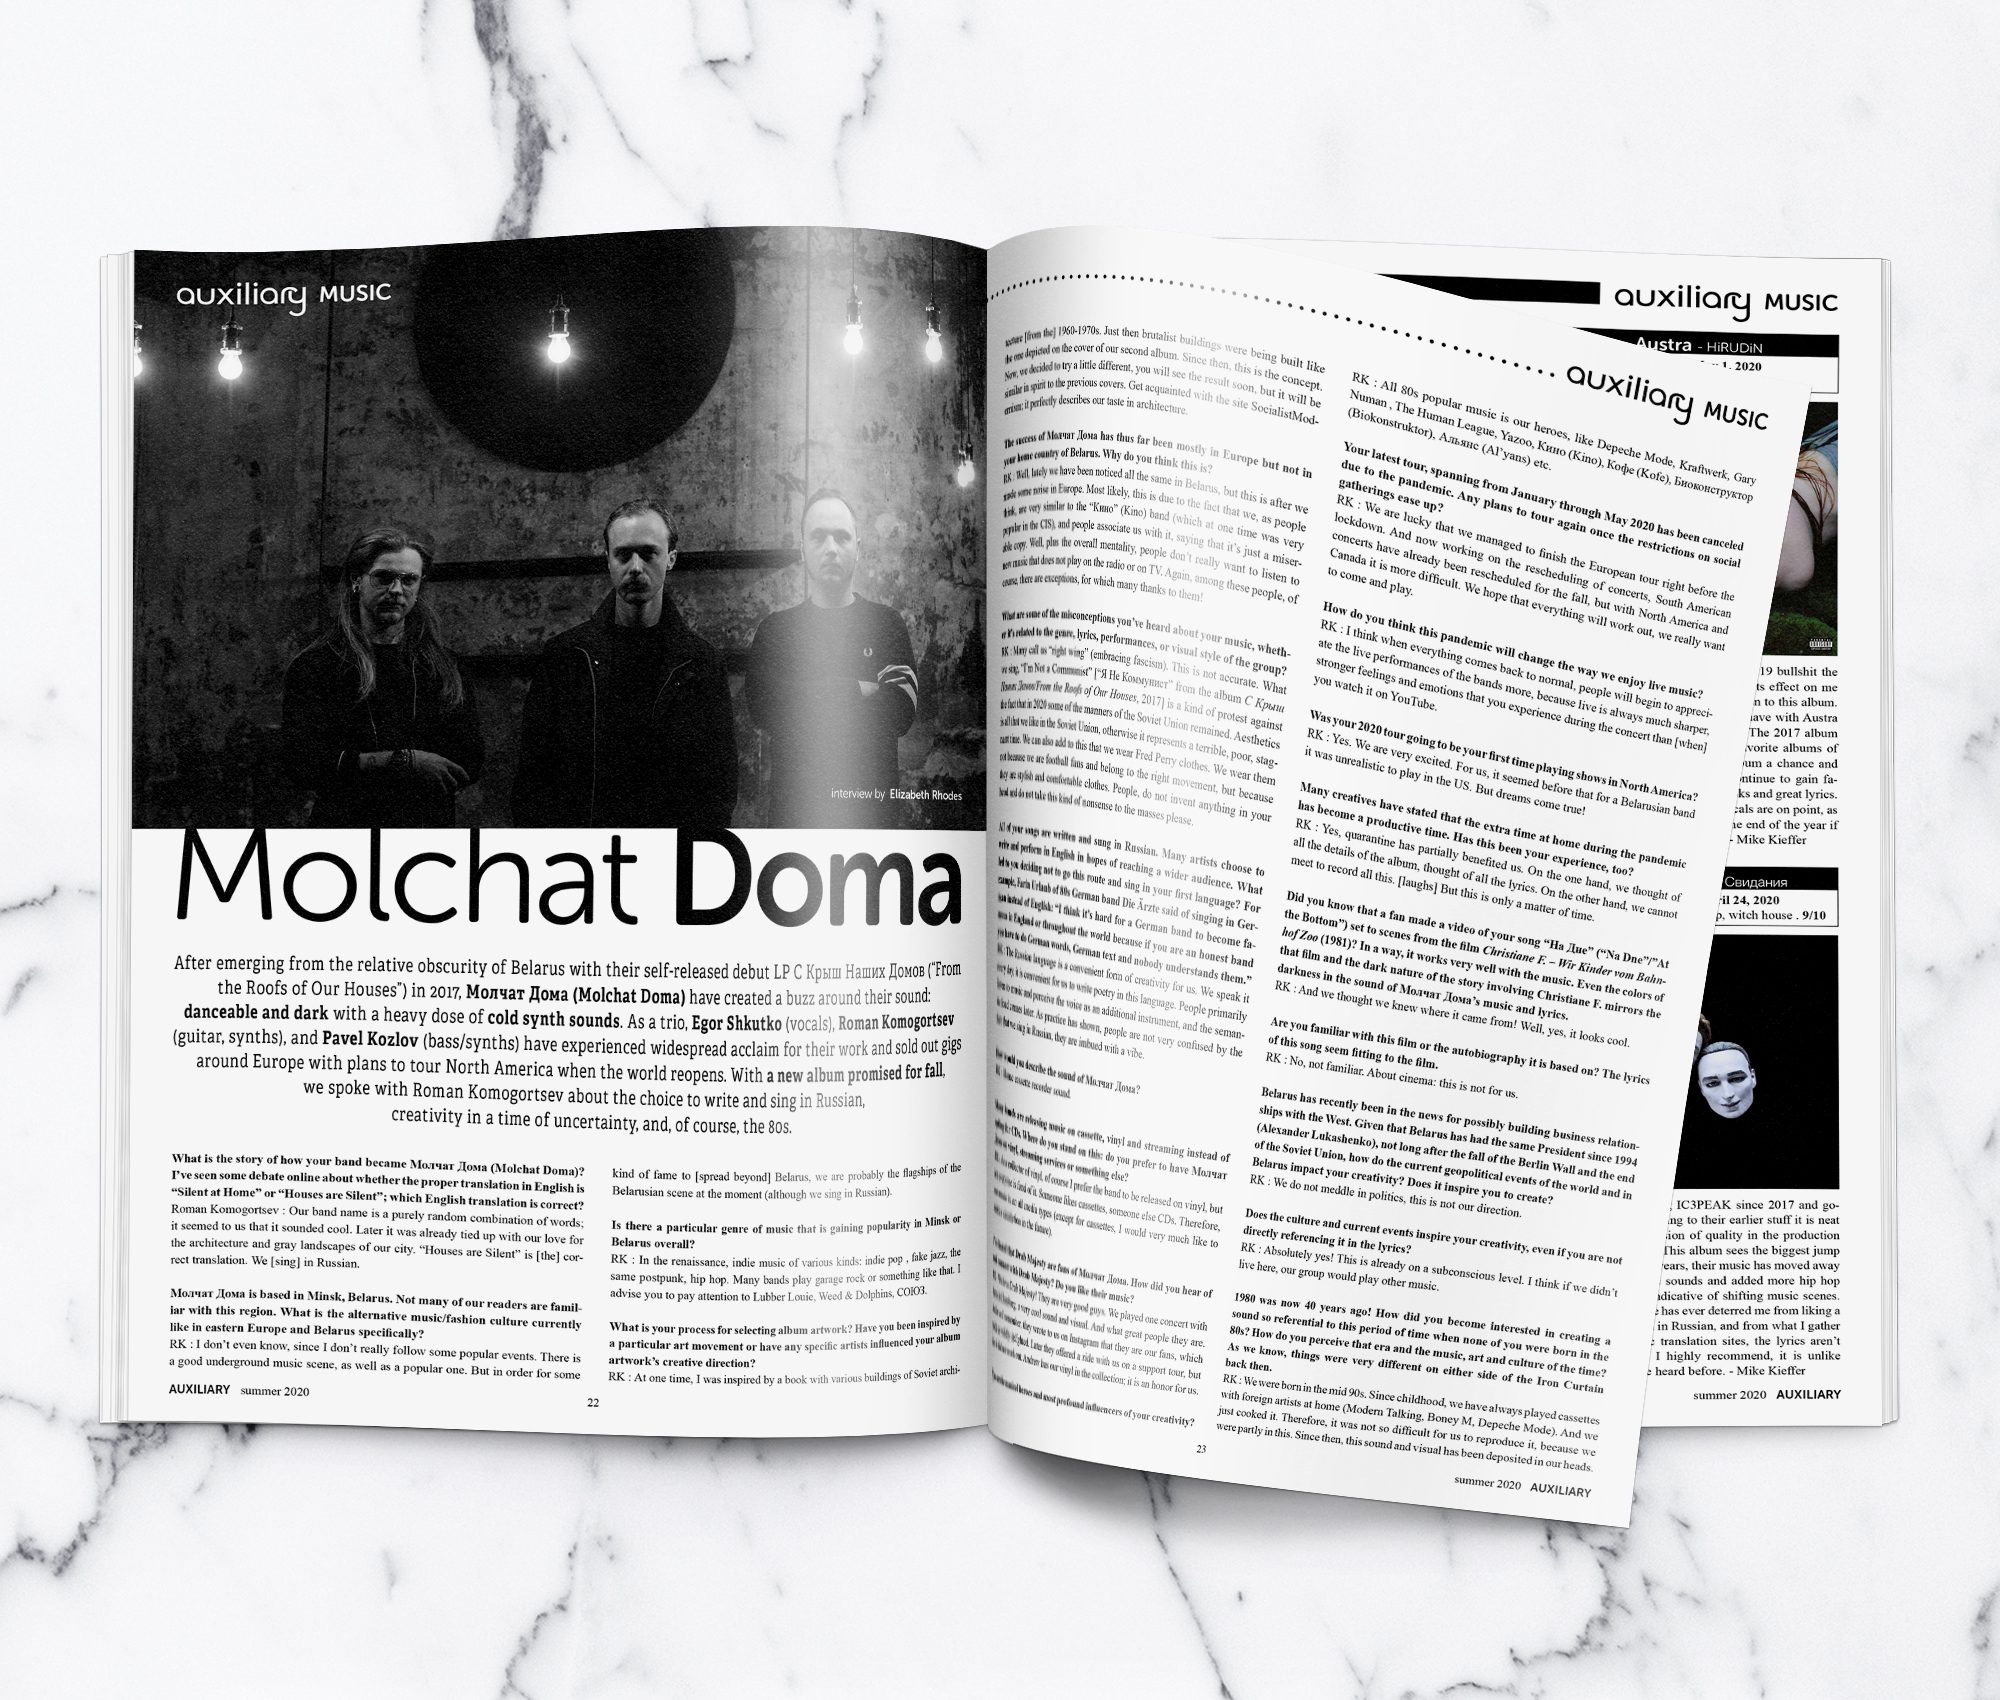 Molchat Doma Interview